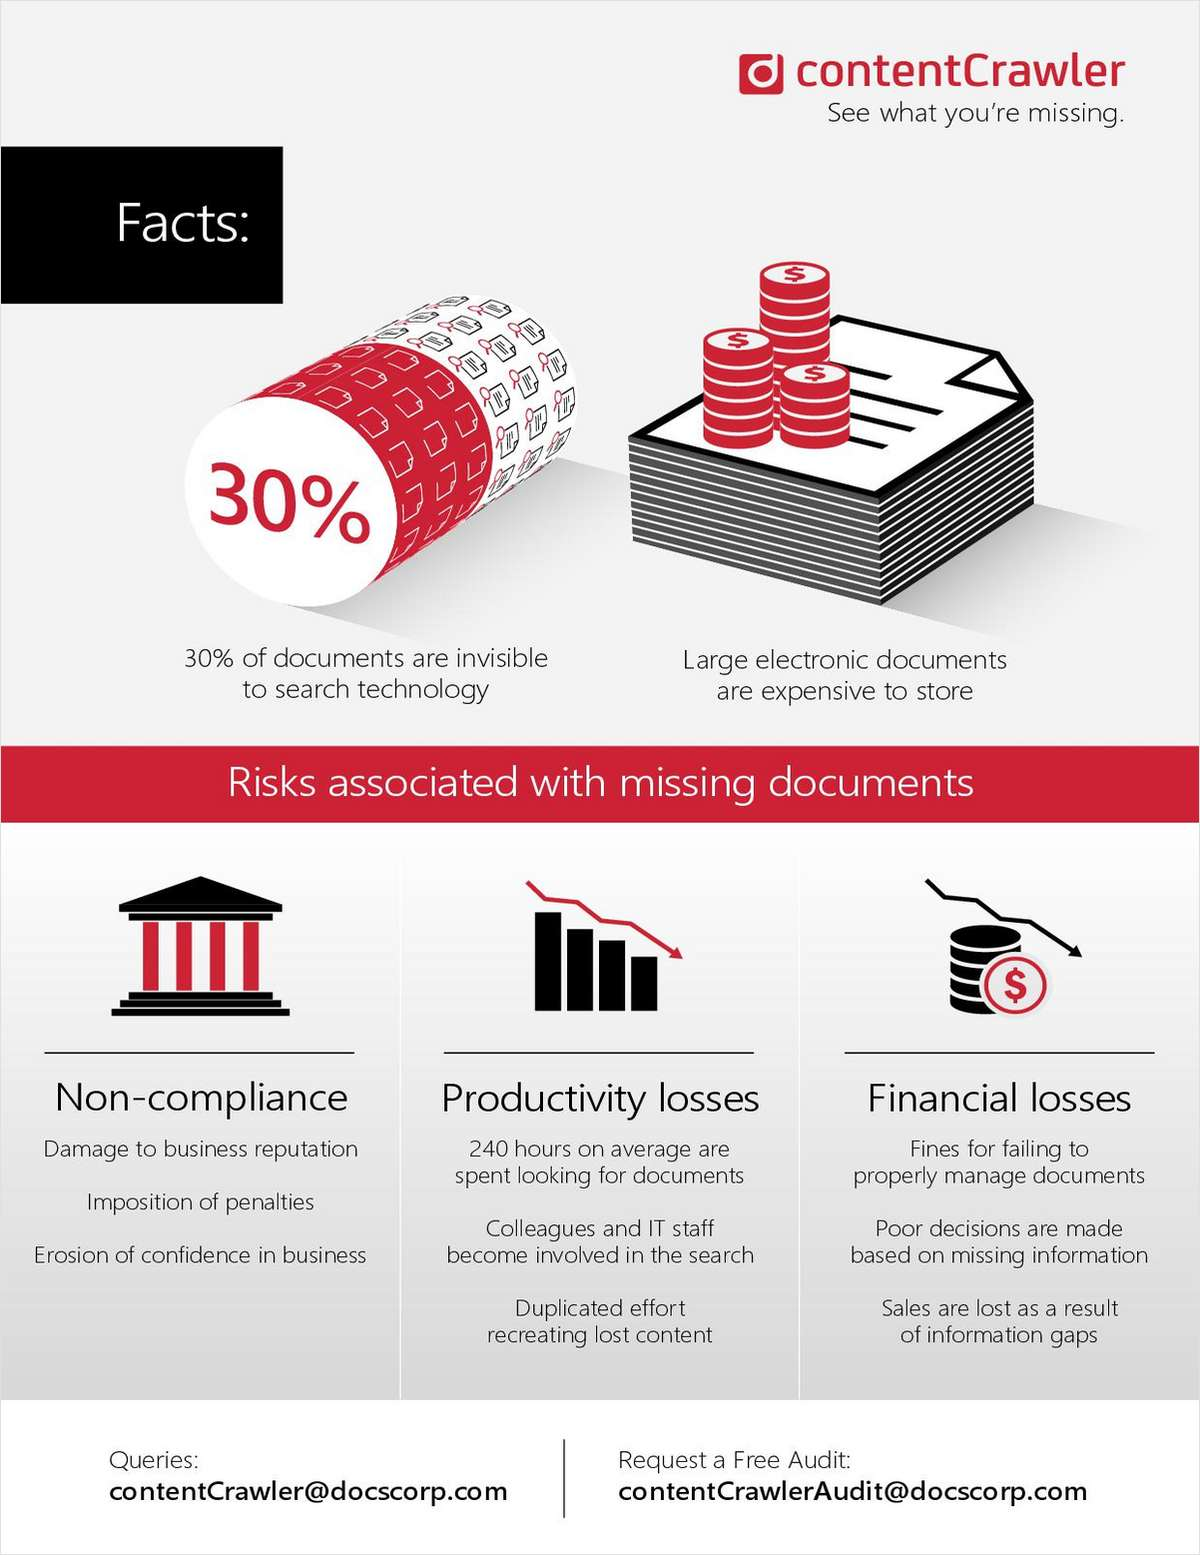 See What Documents You've Been Missing and How It Affects Your Organization